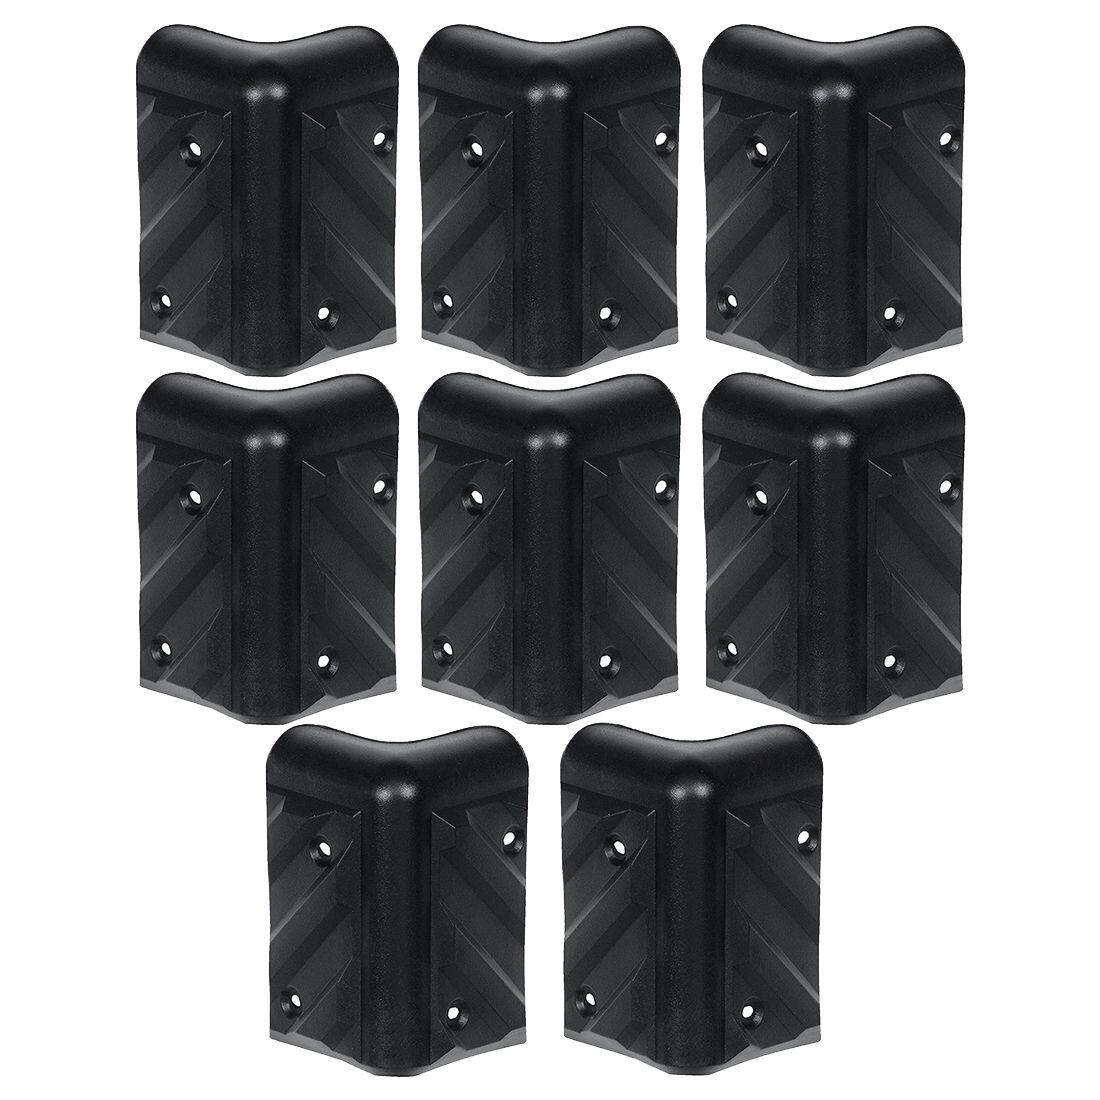 Rh-1610-8-A Stackable Chevron Corner Durable Hdpe Plastic Case, Set Of 8 By Ralleya.